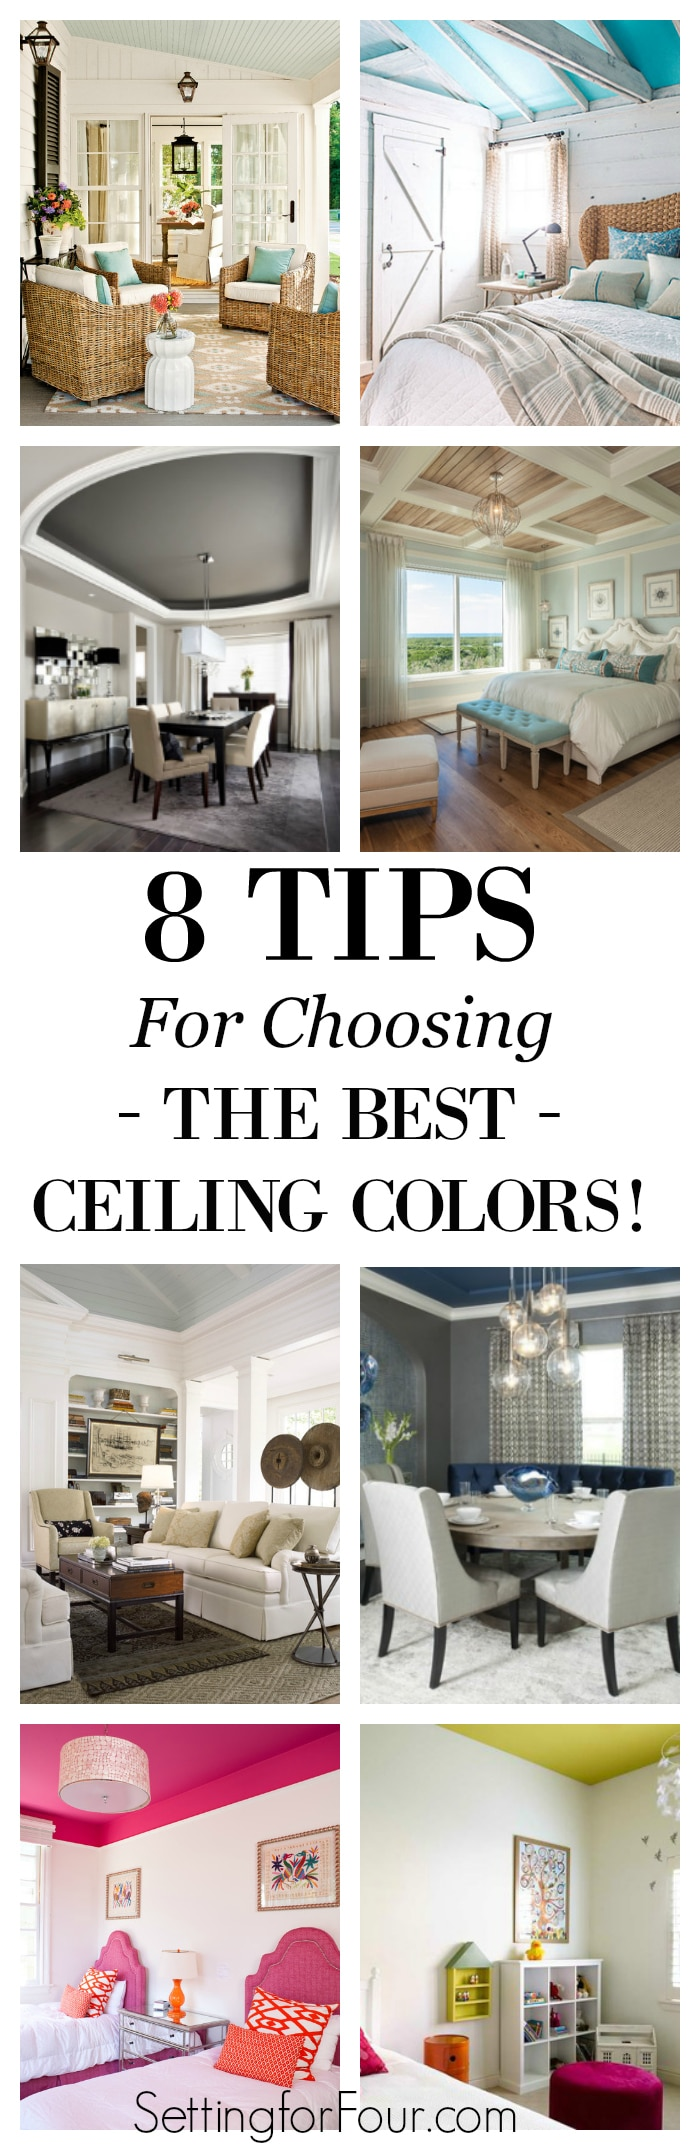 In interior design the ceiling is considered the 5th wall - so go ahead and paint it! See inspiration room photos and follow these 8 tips I've rounded up for choosing beautiful ceiling colors that will coordinate with the rest of your room. Avoid these color pitfalls and decor don'ts!